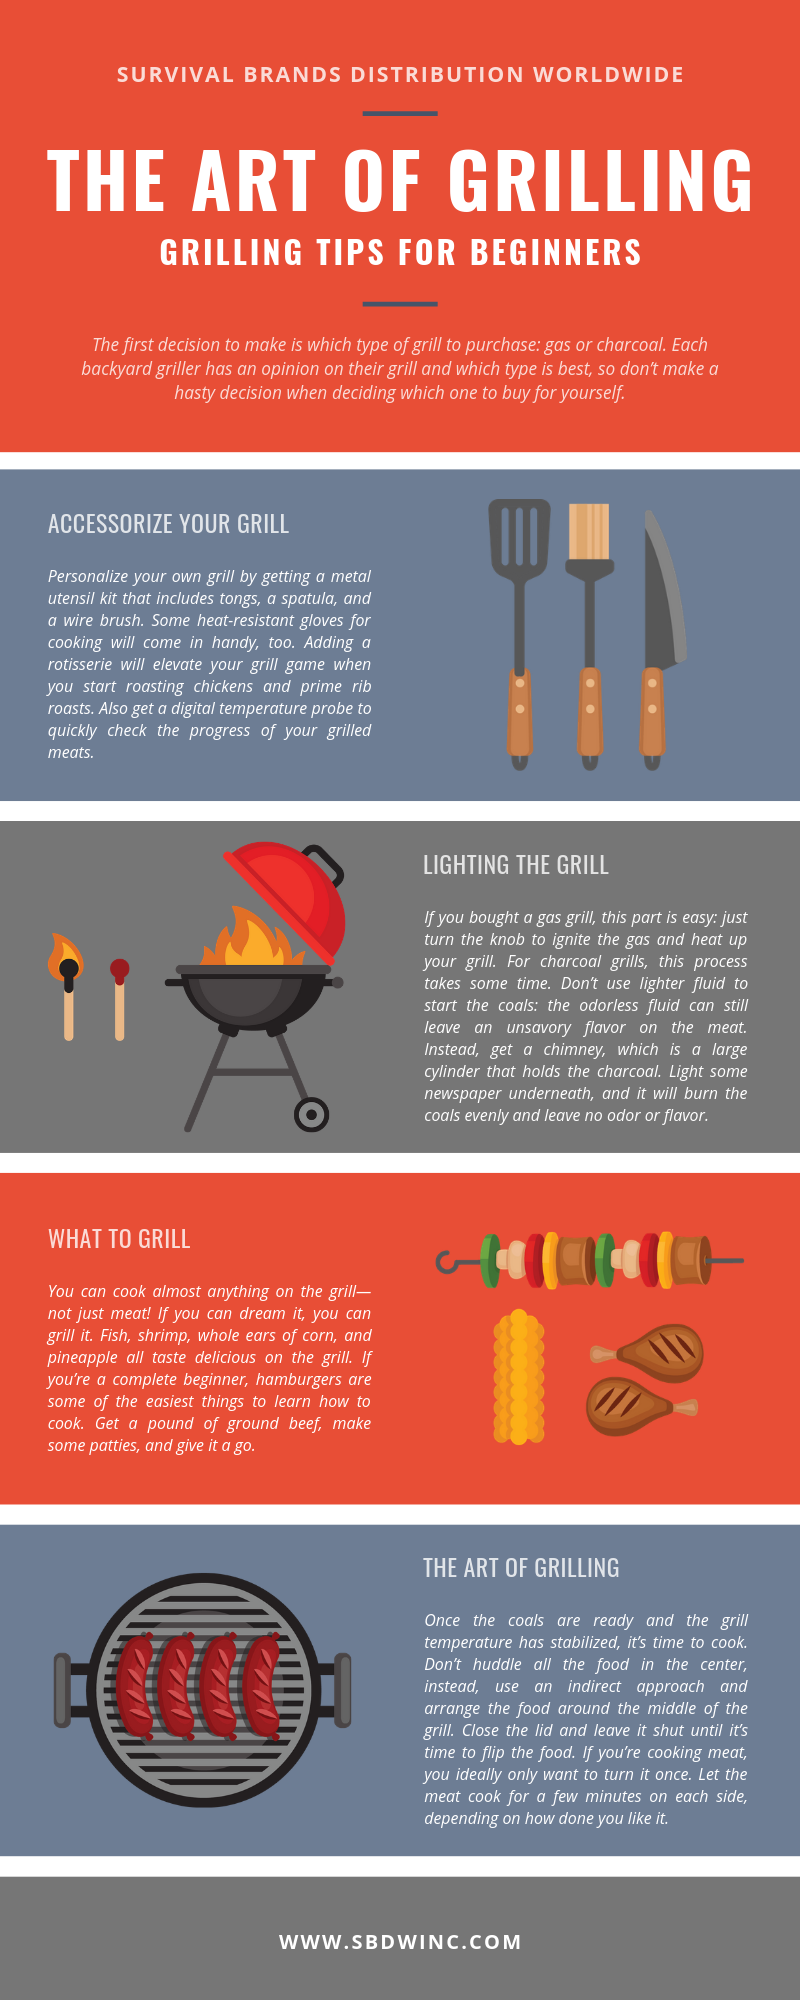 The Art of Grilling Tips for Beginners